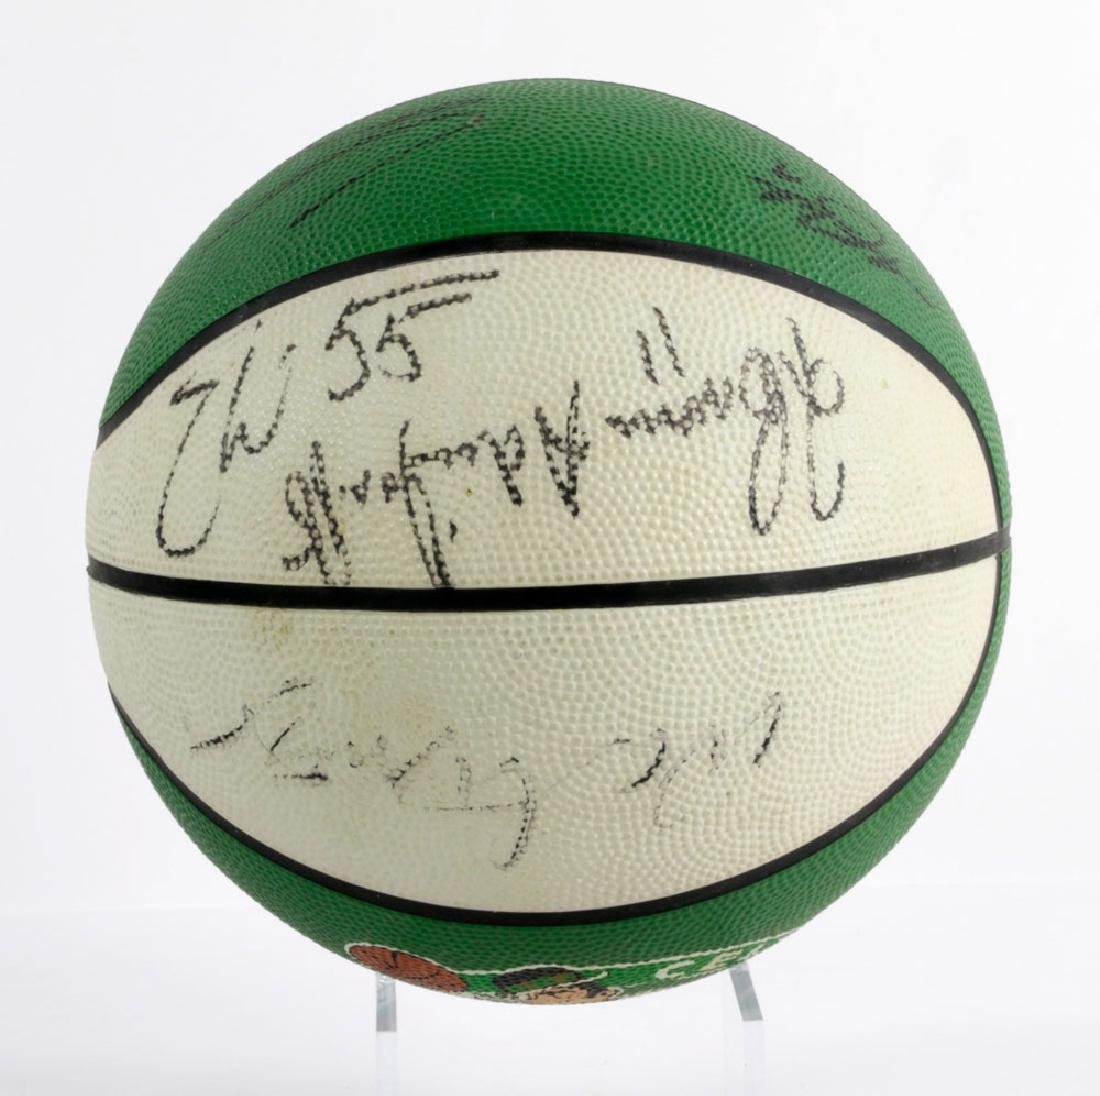 Signed Boston Celtics Basketball - 2